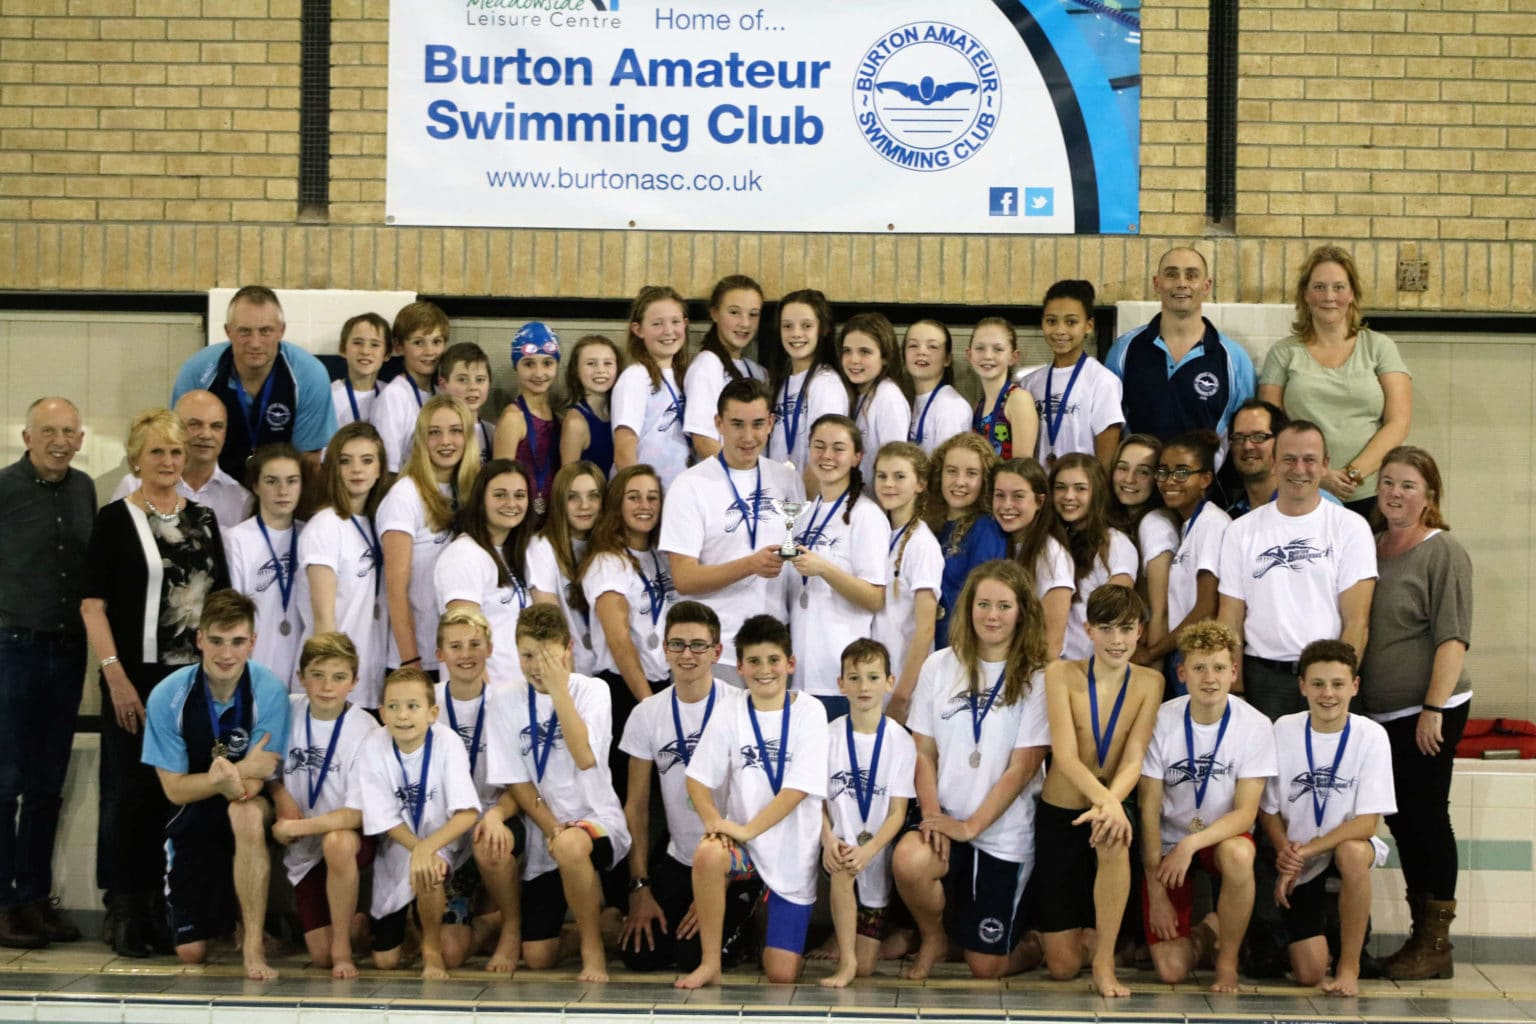 Burton Amateur Swim Club